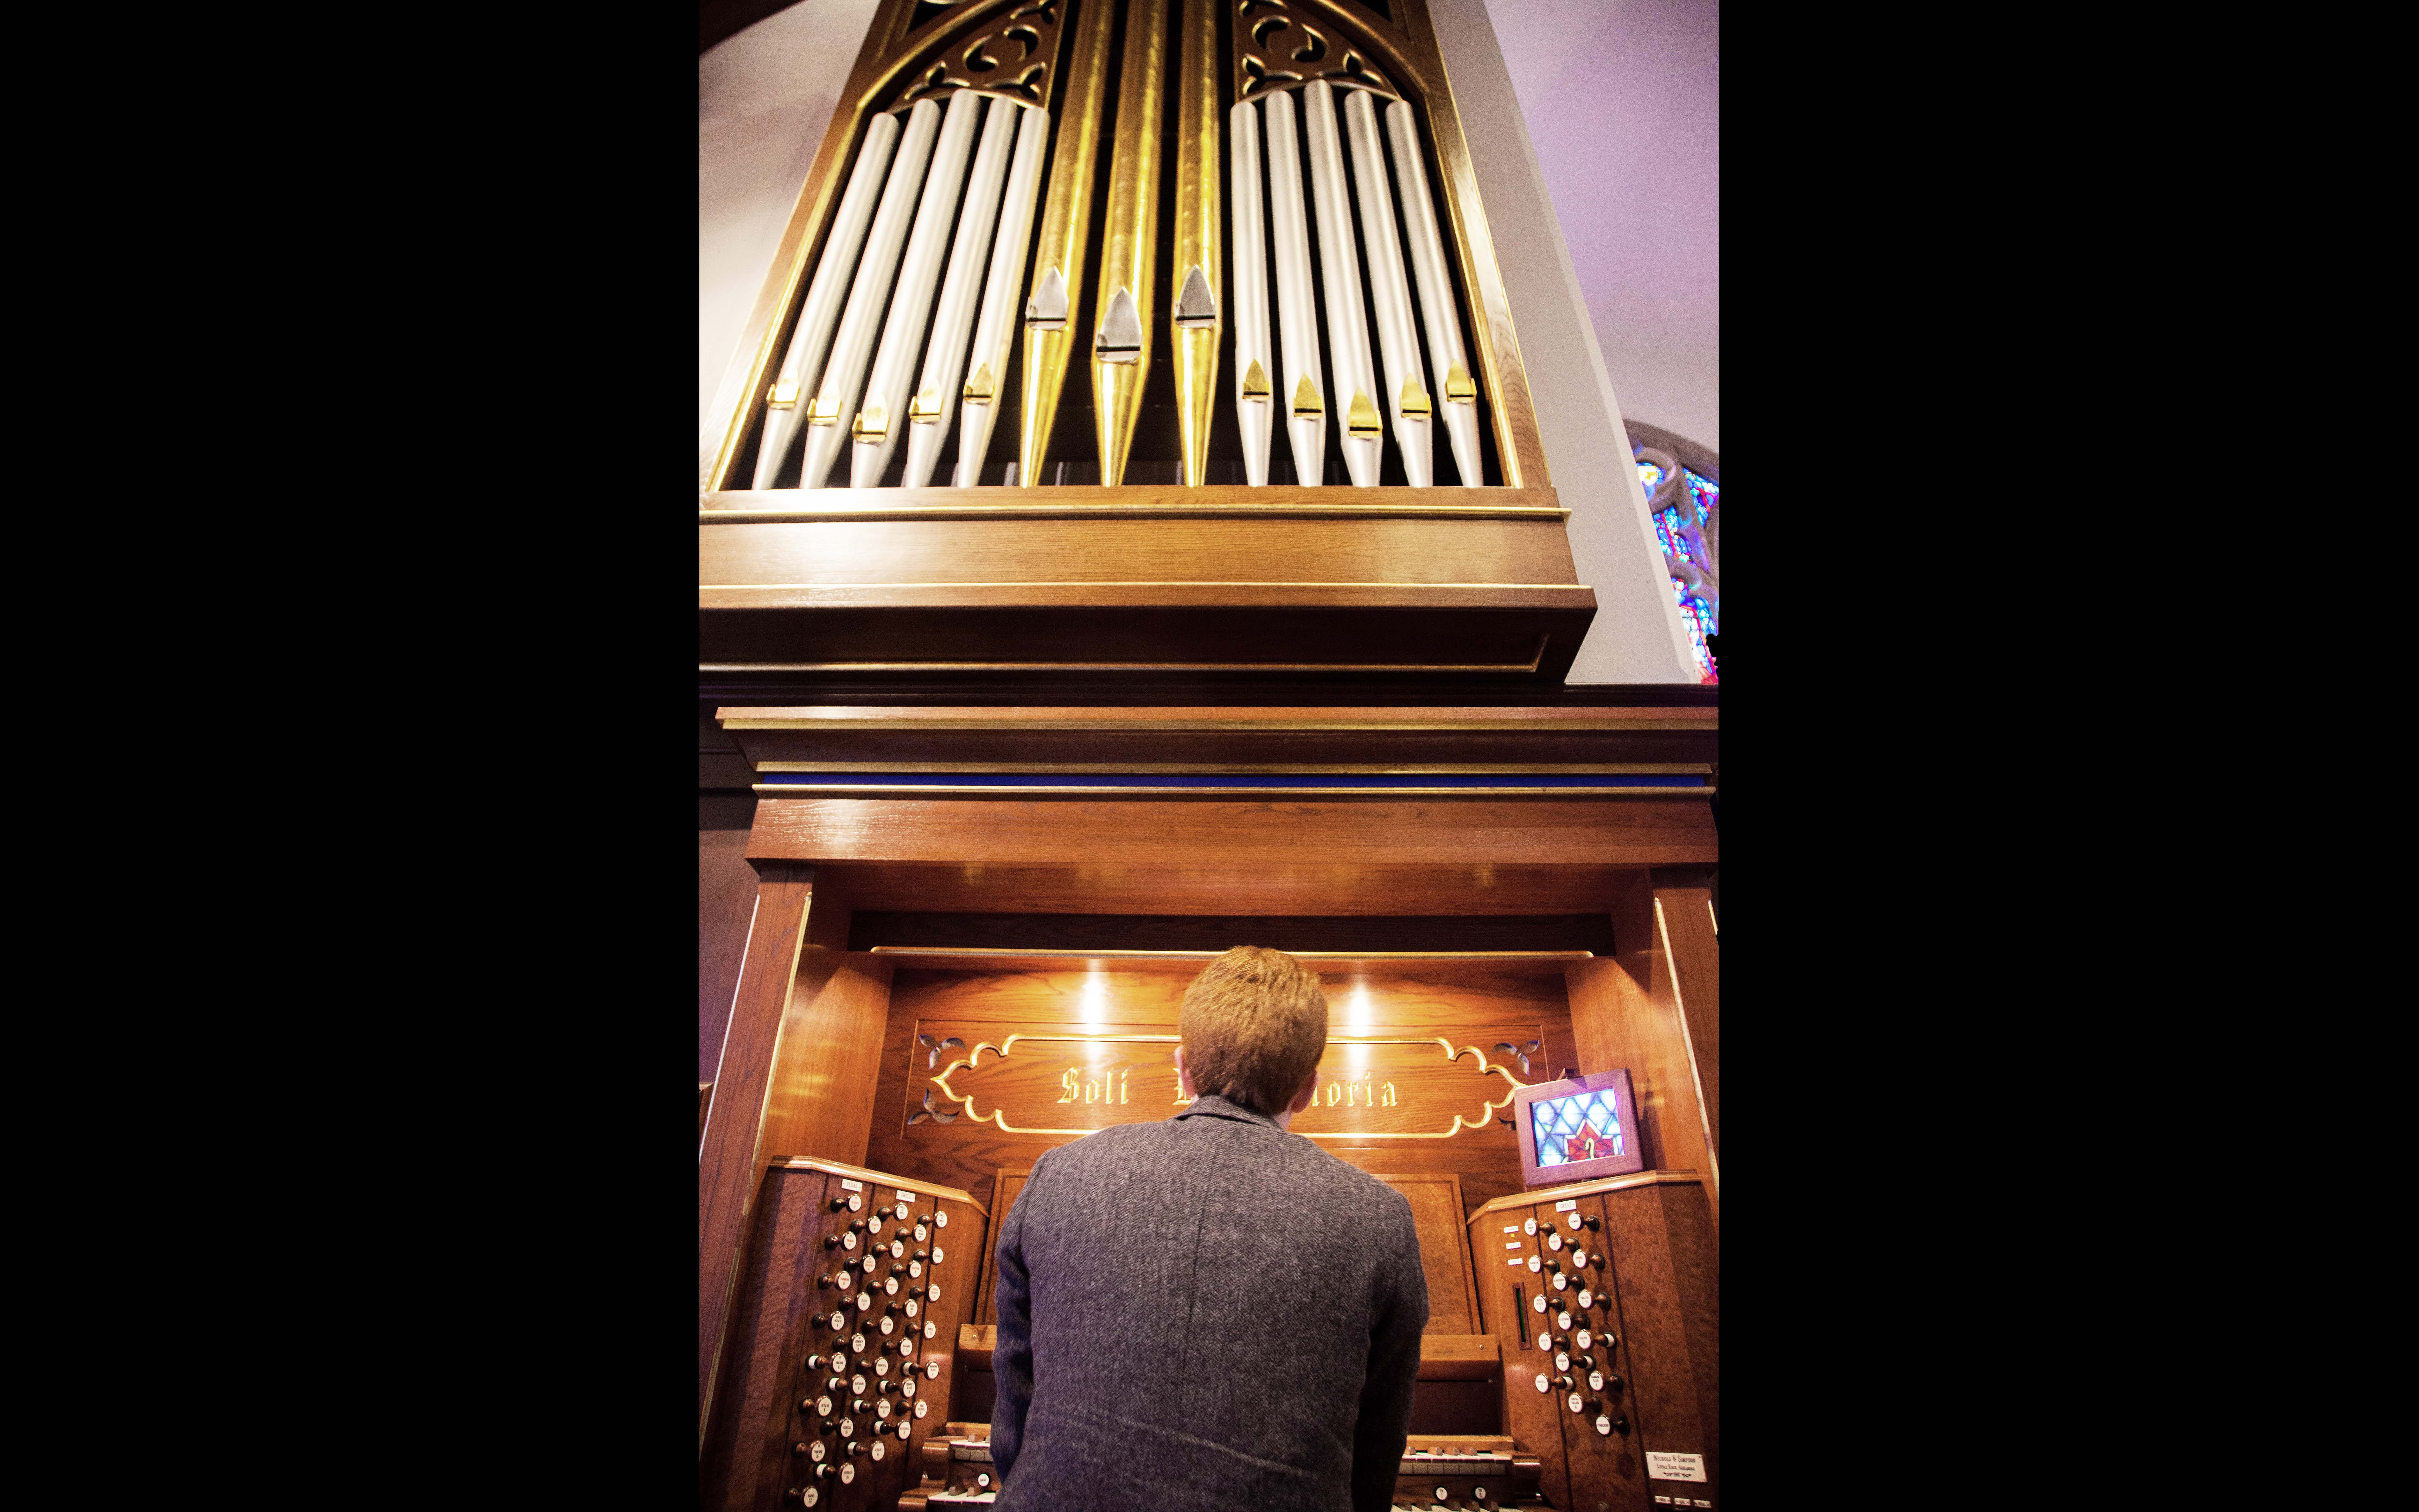 One of the most complex instruments in Western music, organs are not only difficult to play, but also tough to build. (Photo by Maddison Steward/Courtesy of Hendrix College)